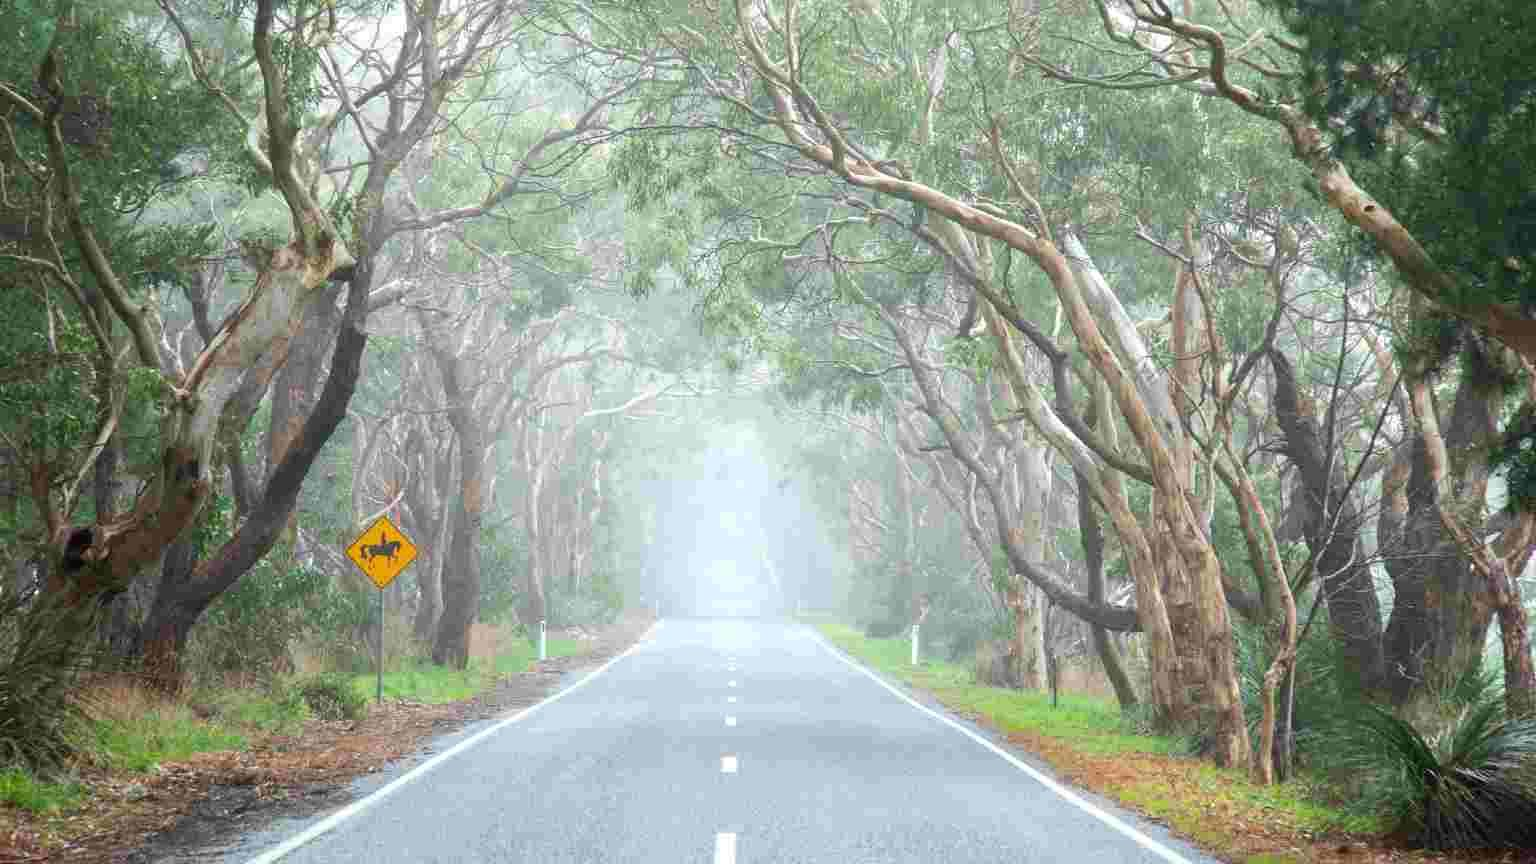 Large eucalyptus gum tree lined road on a misty foggy morning , Adelaide Hills, Australia